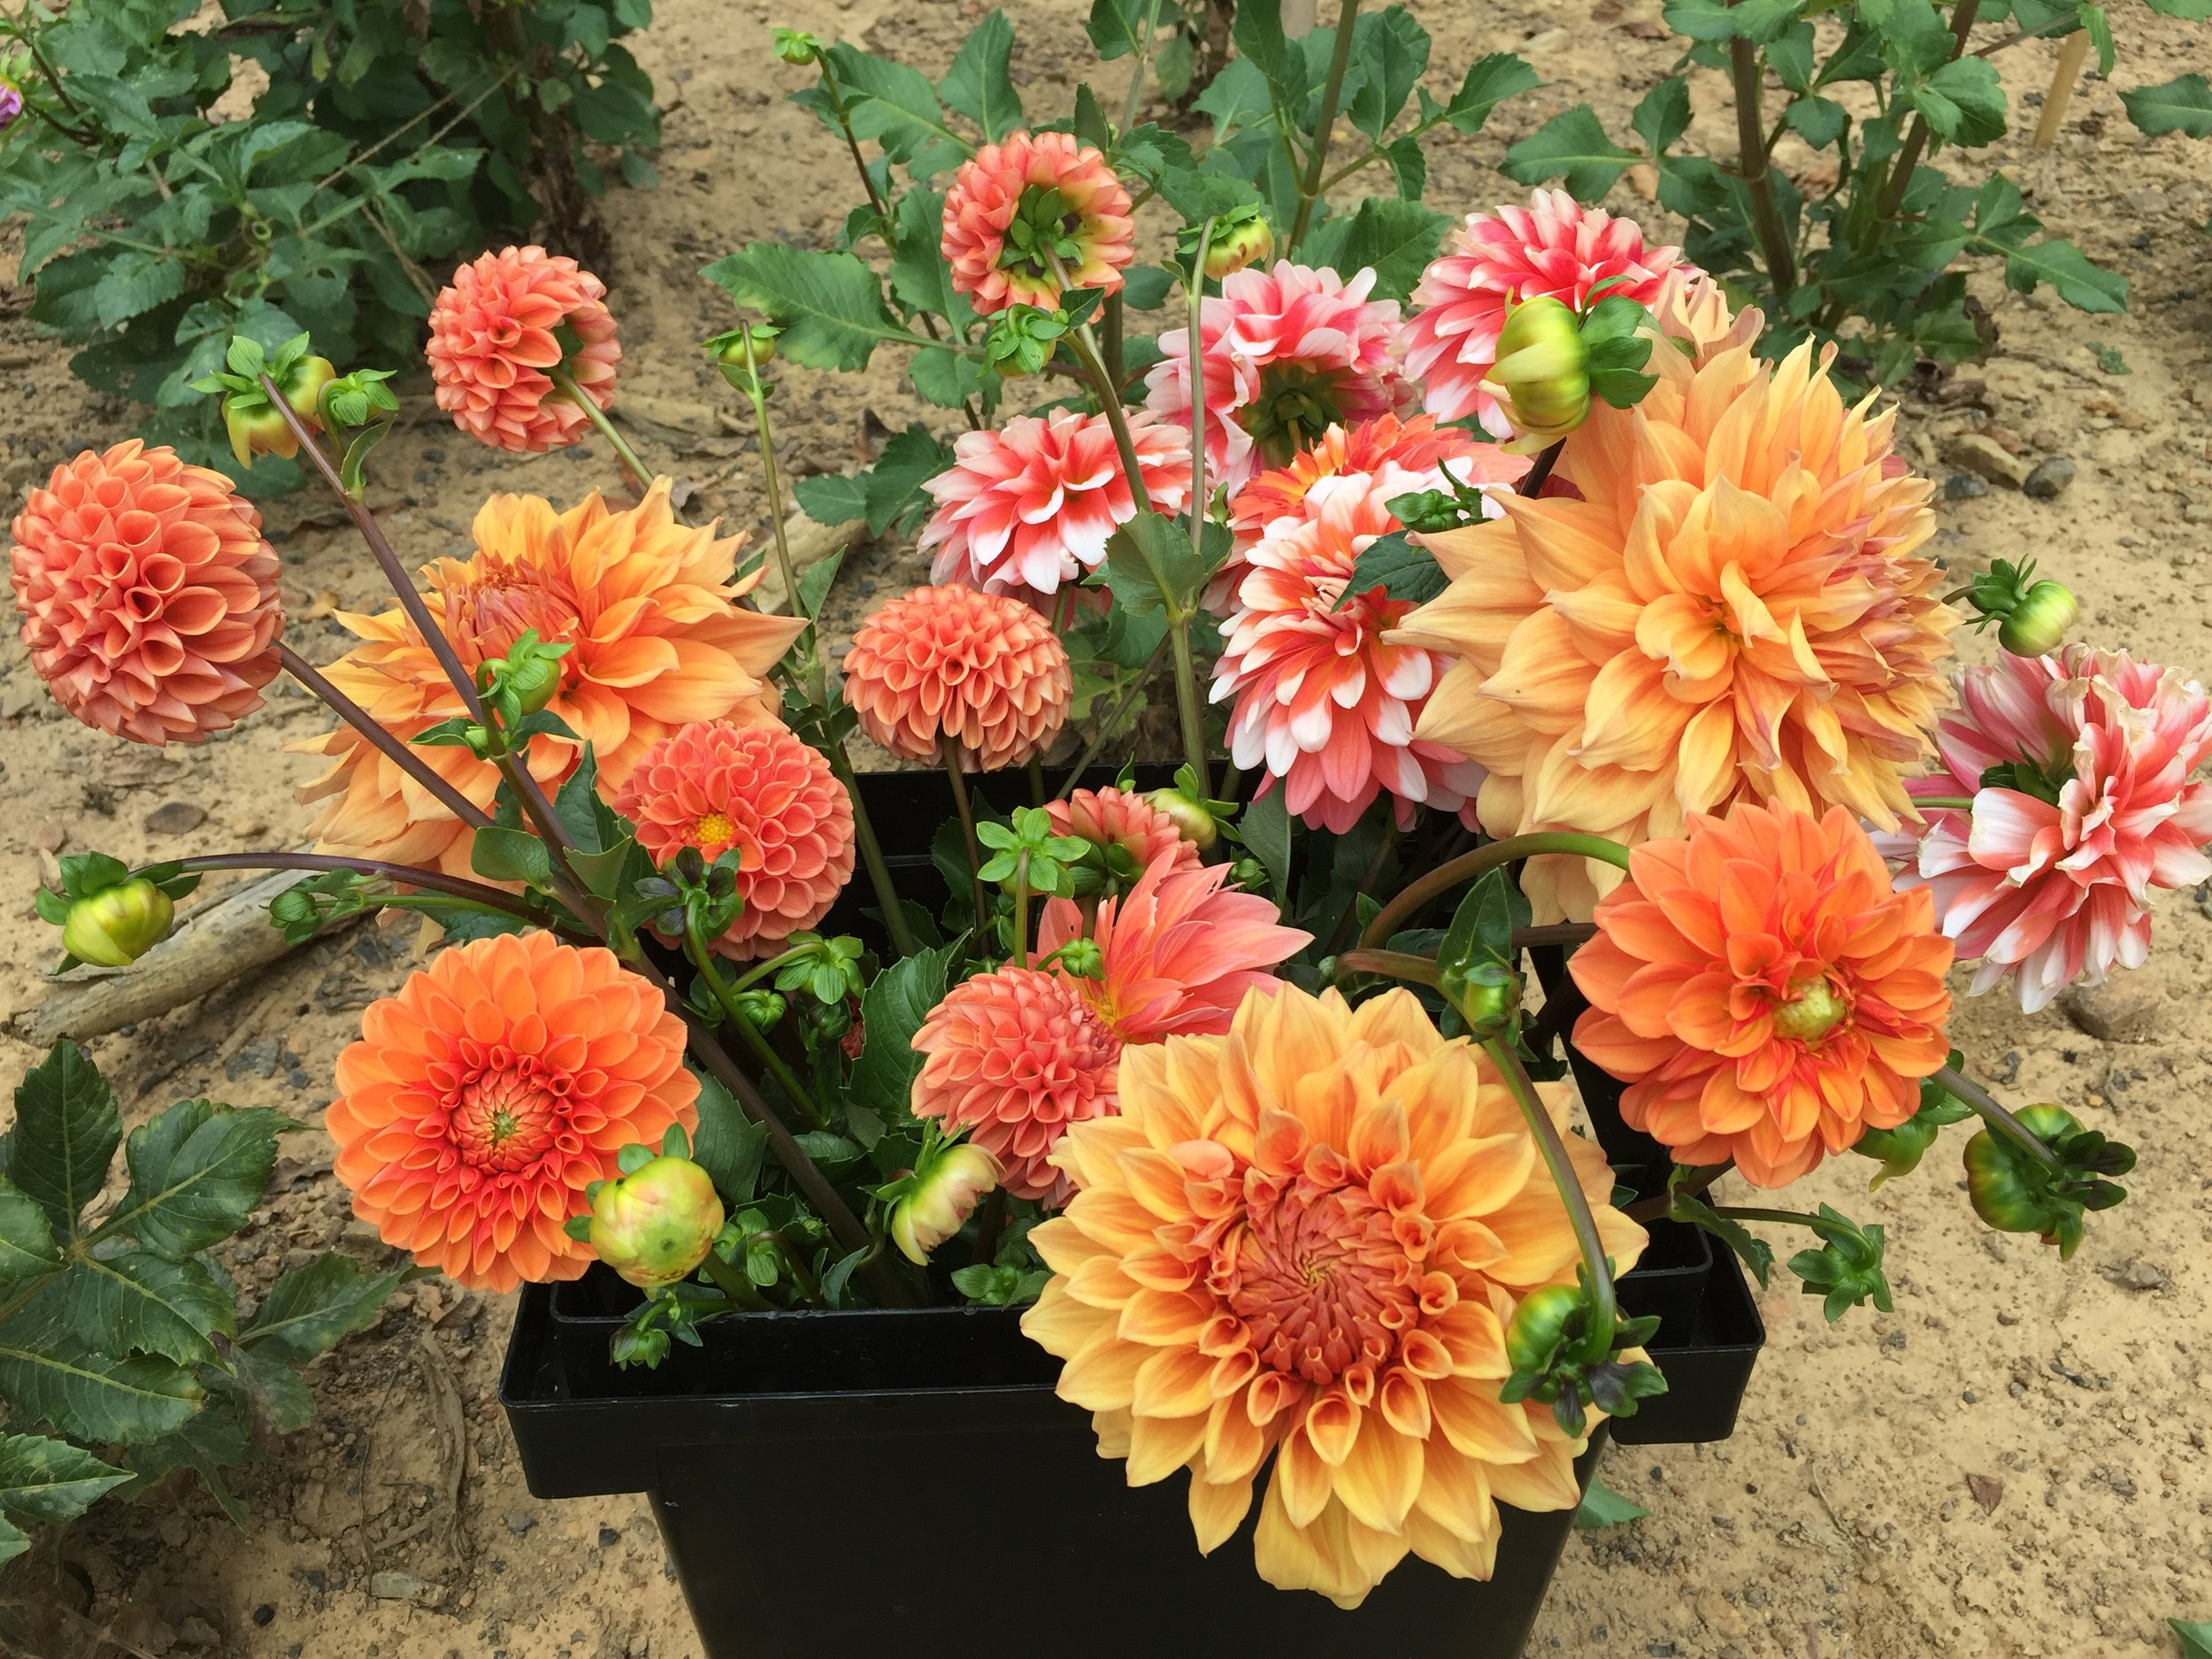 In September and October, we harvest buckets and buckets of dahlias.